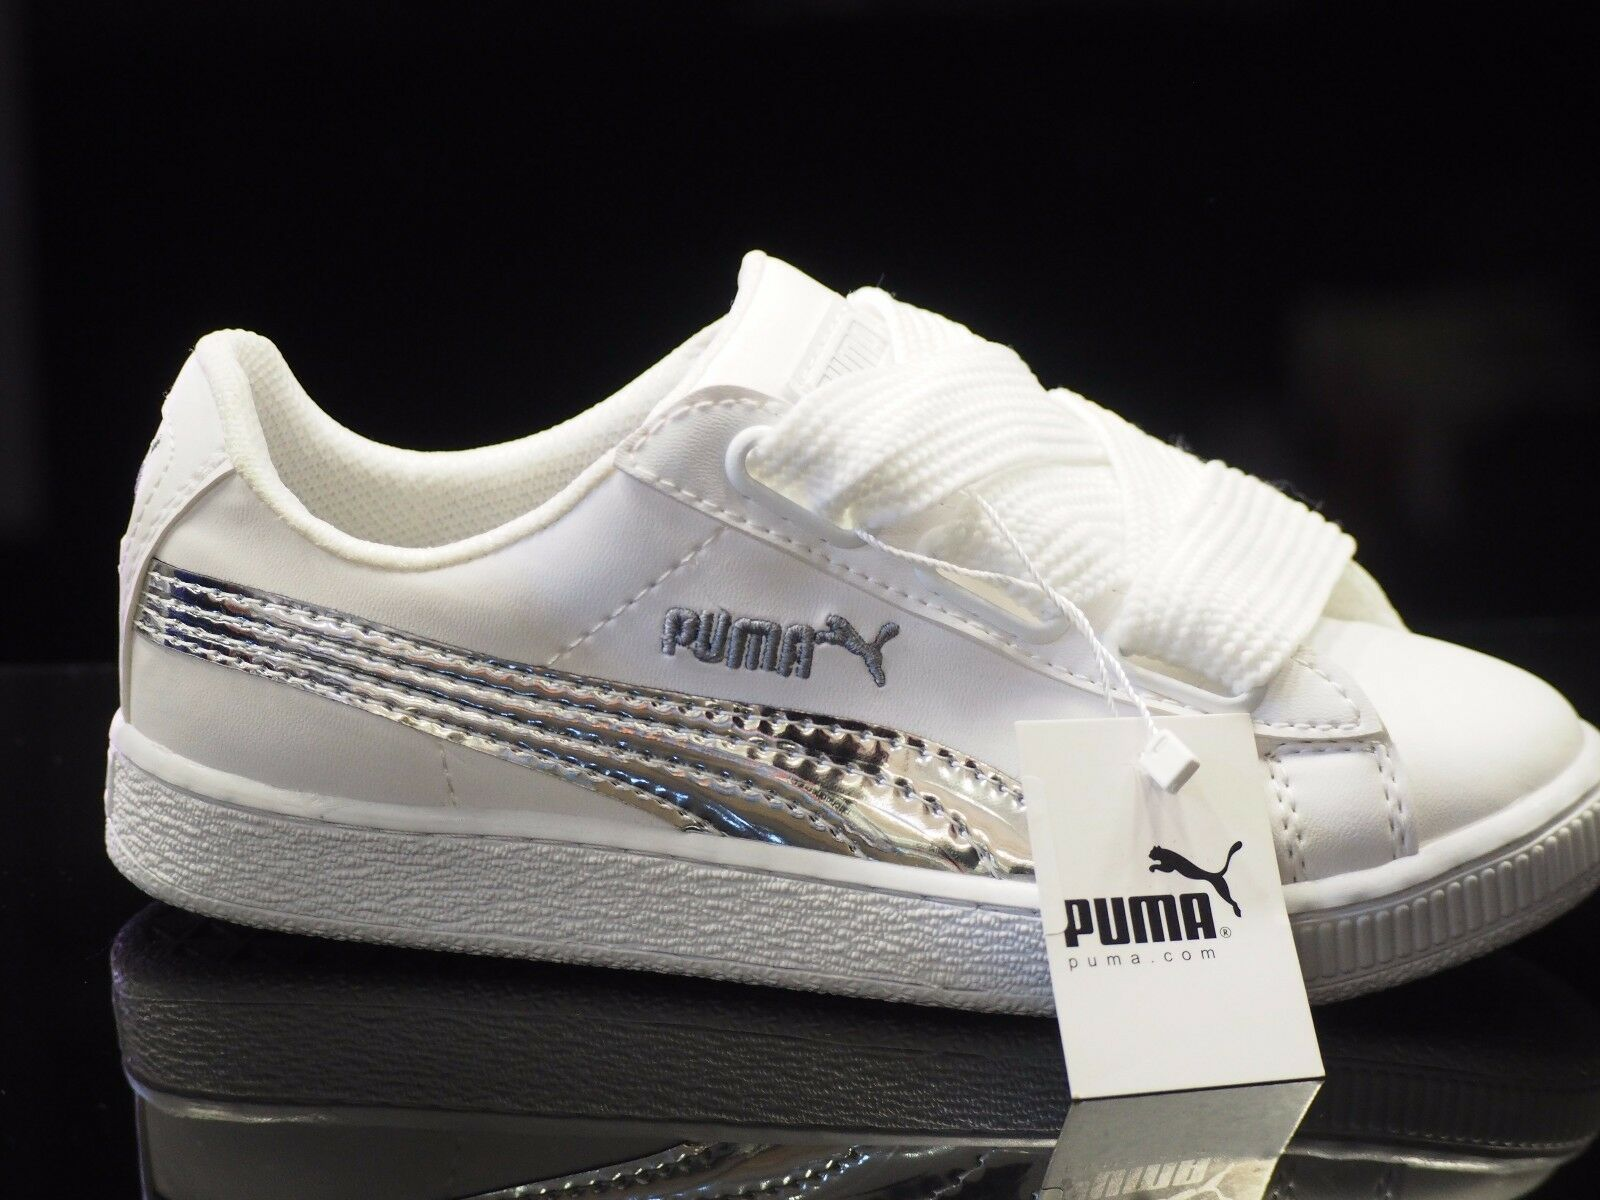 Puma Suede Heart Satin,White,Black Womens Womens Satin,White,Black Sneakers a42582